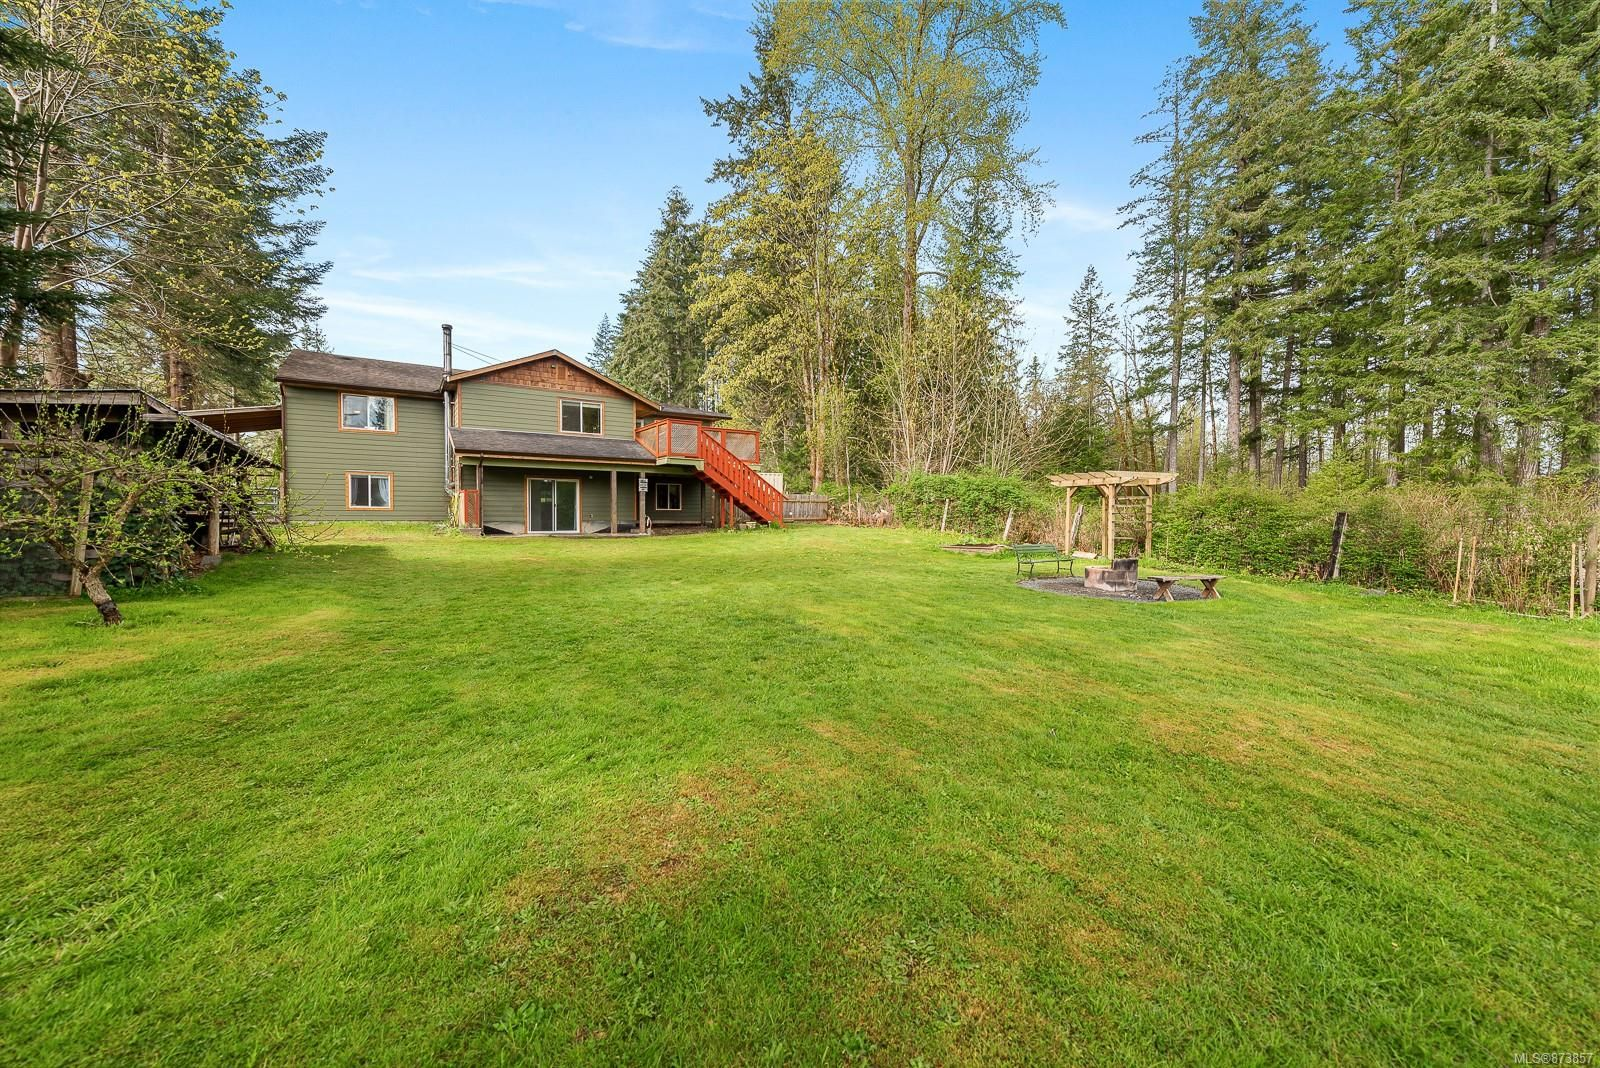 Main Photo: 76 Leash Rd in : CV Courtenay West House for sale (Comox Valley)  : MLS®# 873857